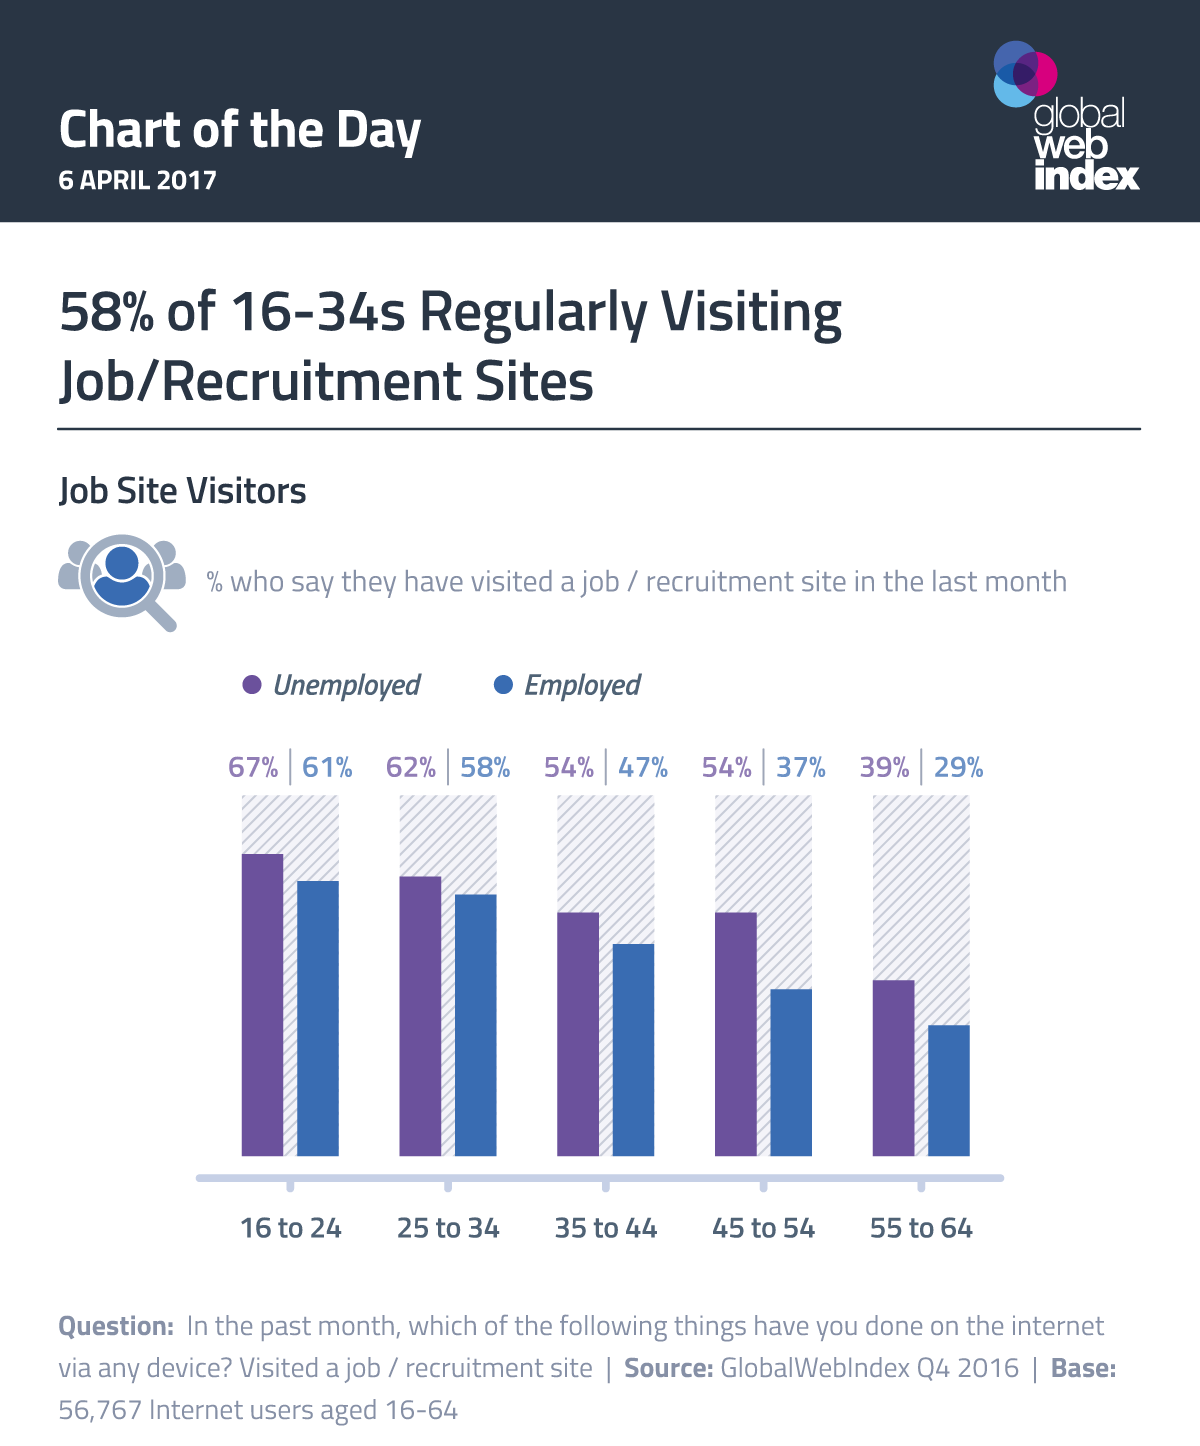 58% of 16-34s Regularly Visiting Job/Recruitment Sites